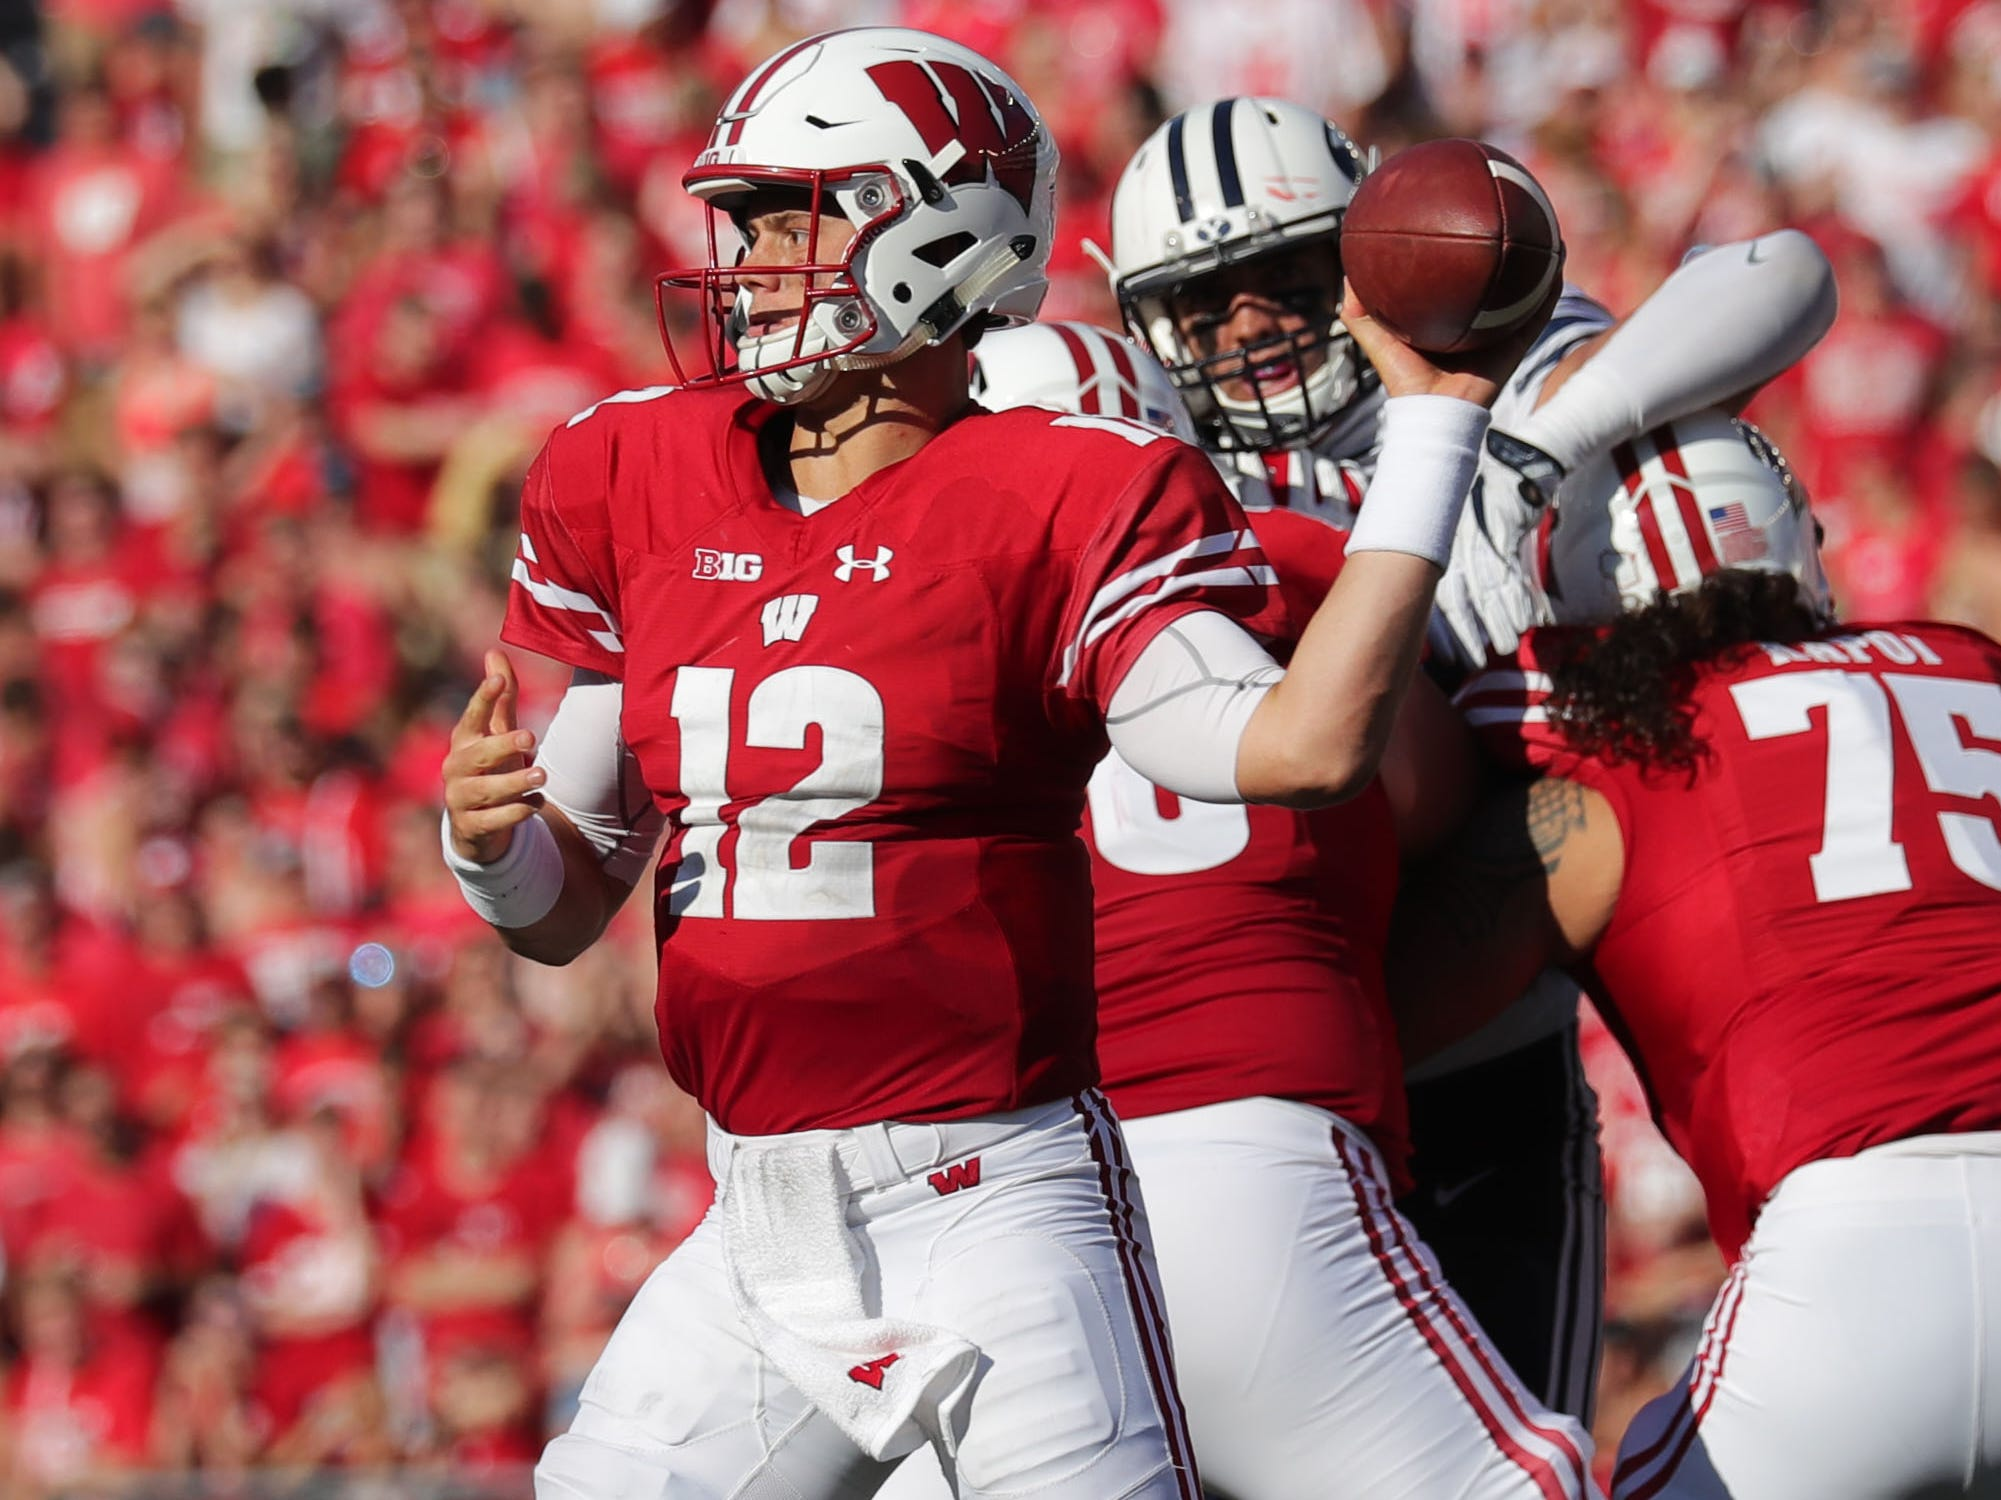 Wisconsin quarterback Alex Hornibrook looks to pass against BYU at Camp Randall Stadium.